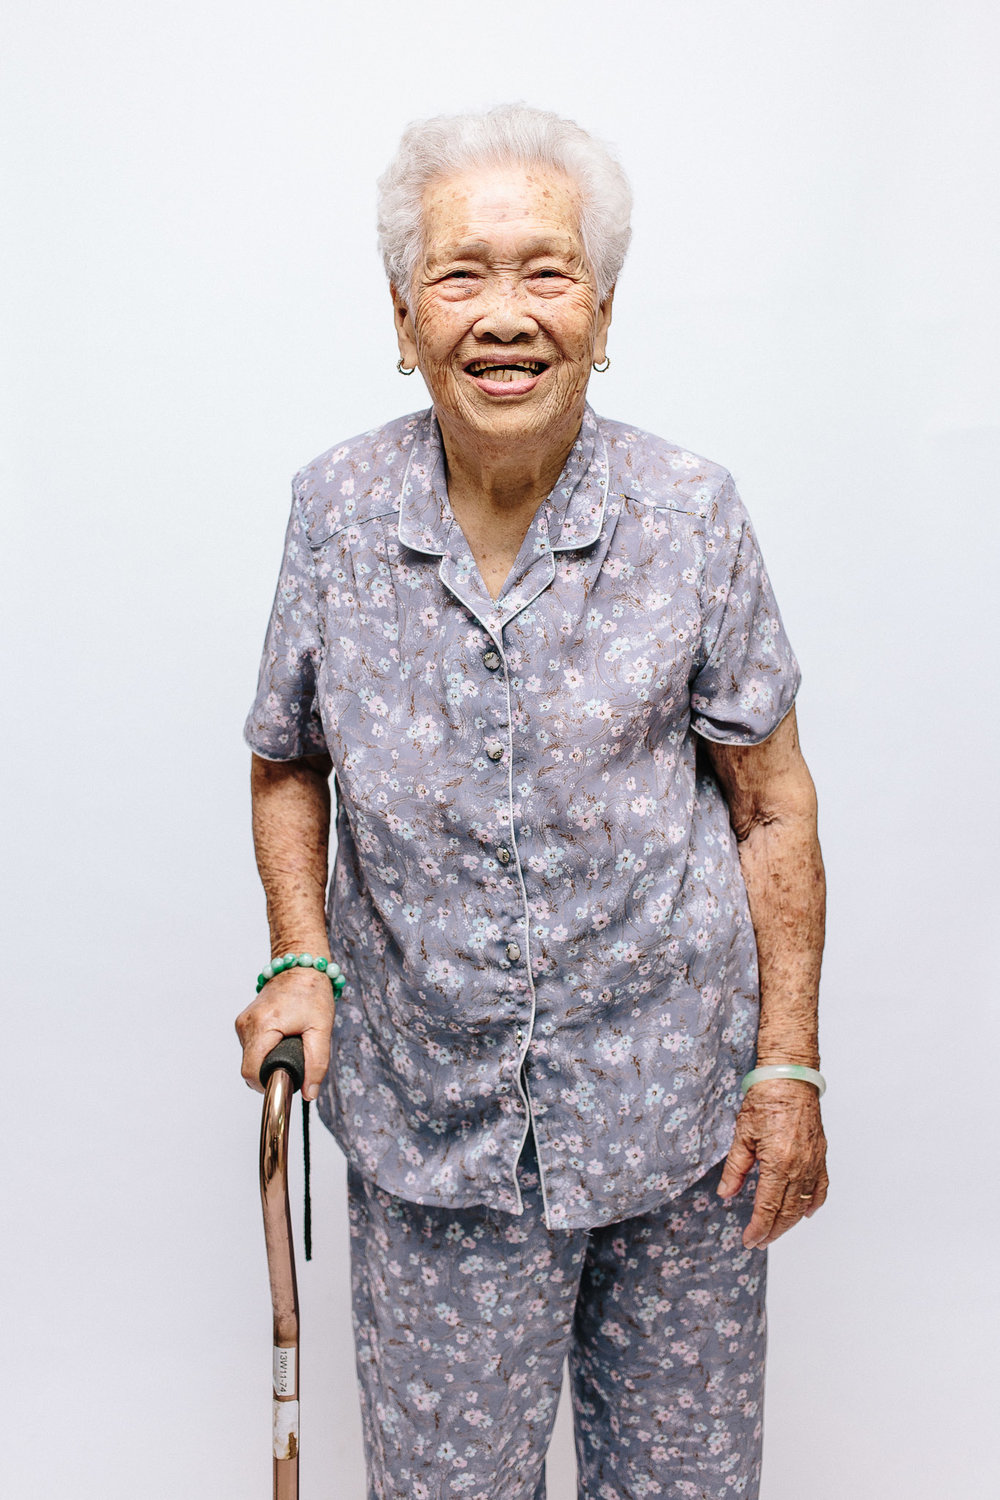 singapore-photographer-hospice-care-015.jpg